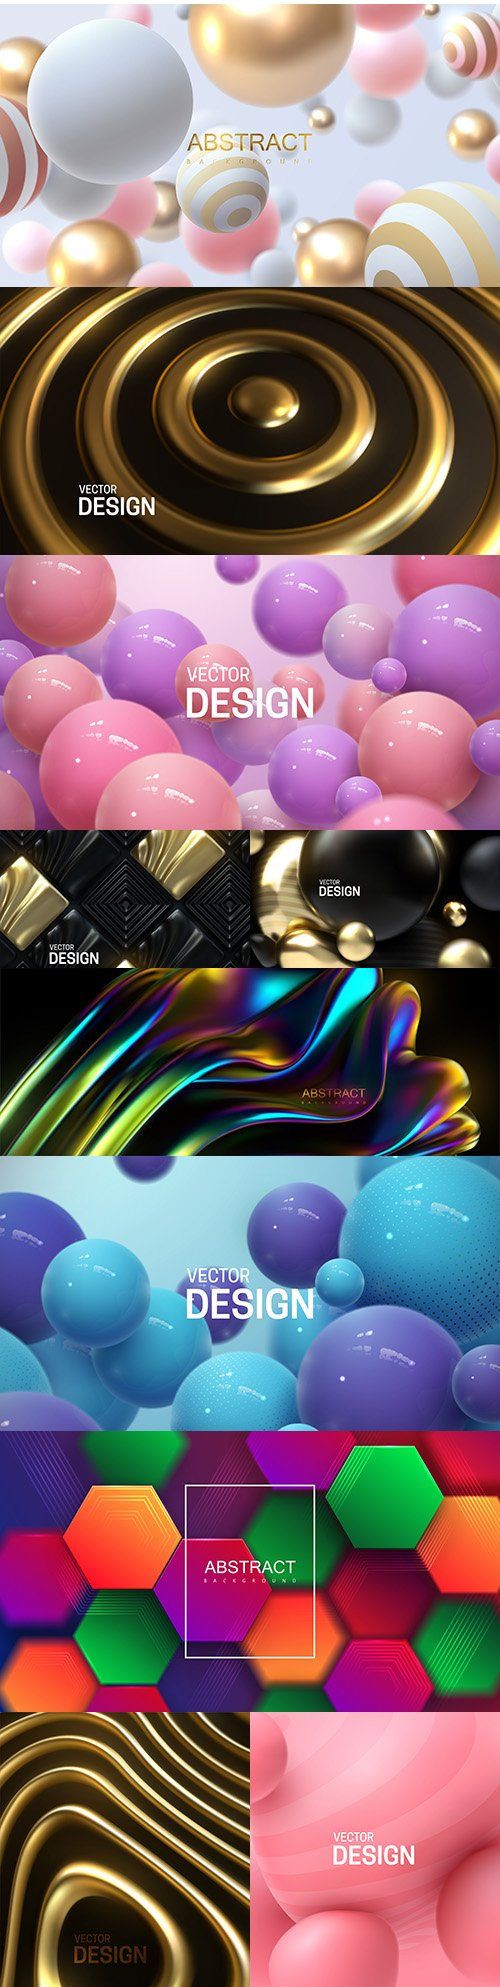 Abstract background with bouncing 3d spheres illustration